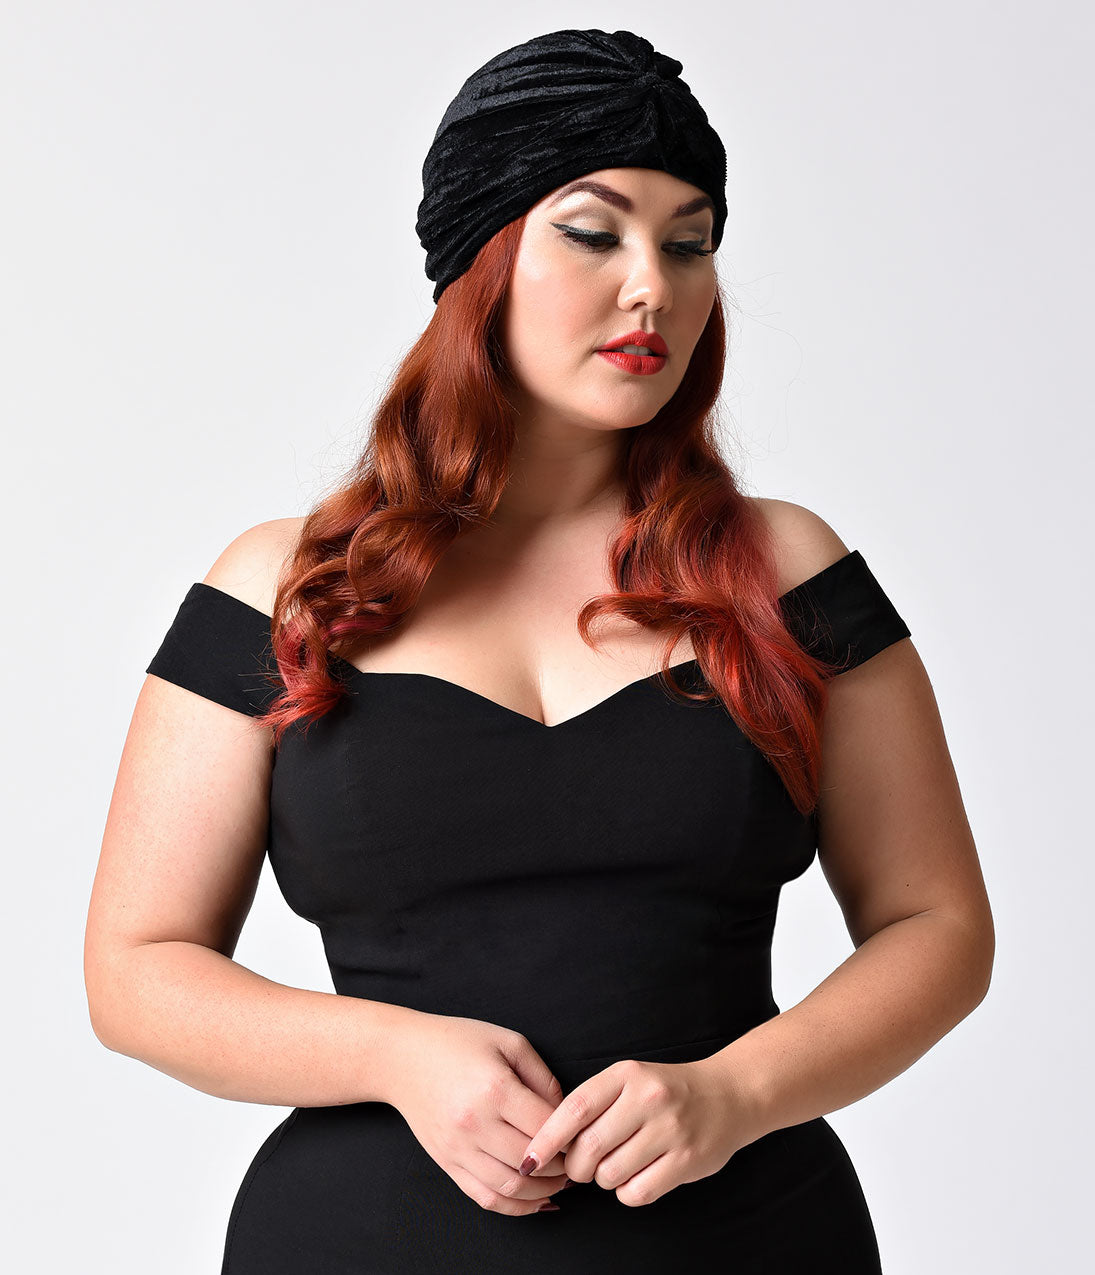 1930s Style Hats | 30s Ladies Hats Vintage Style Black Velvet Knotted Turban $14.00 AT vintagedancer.com